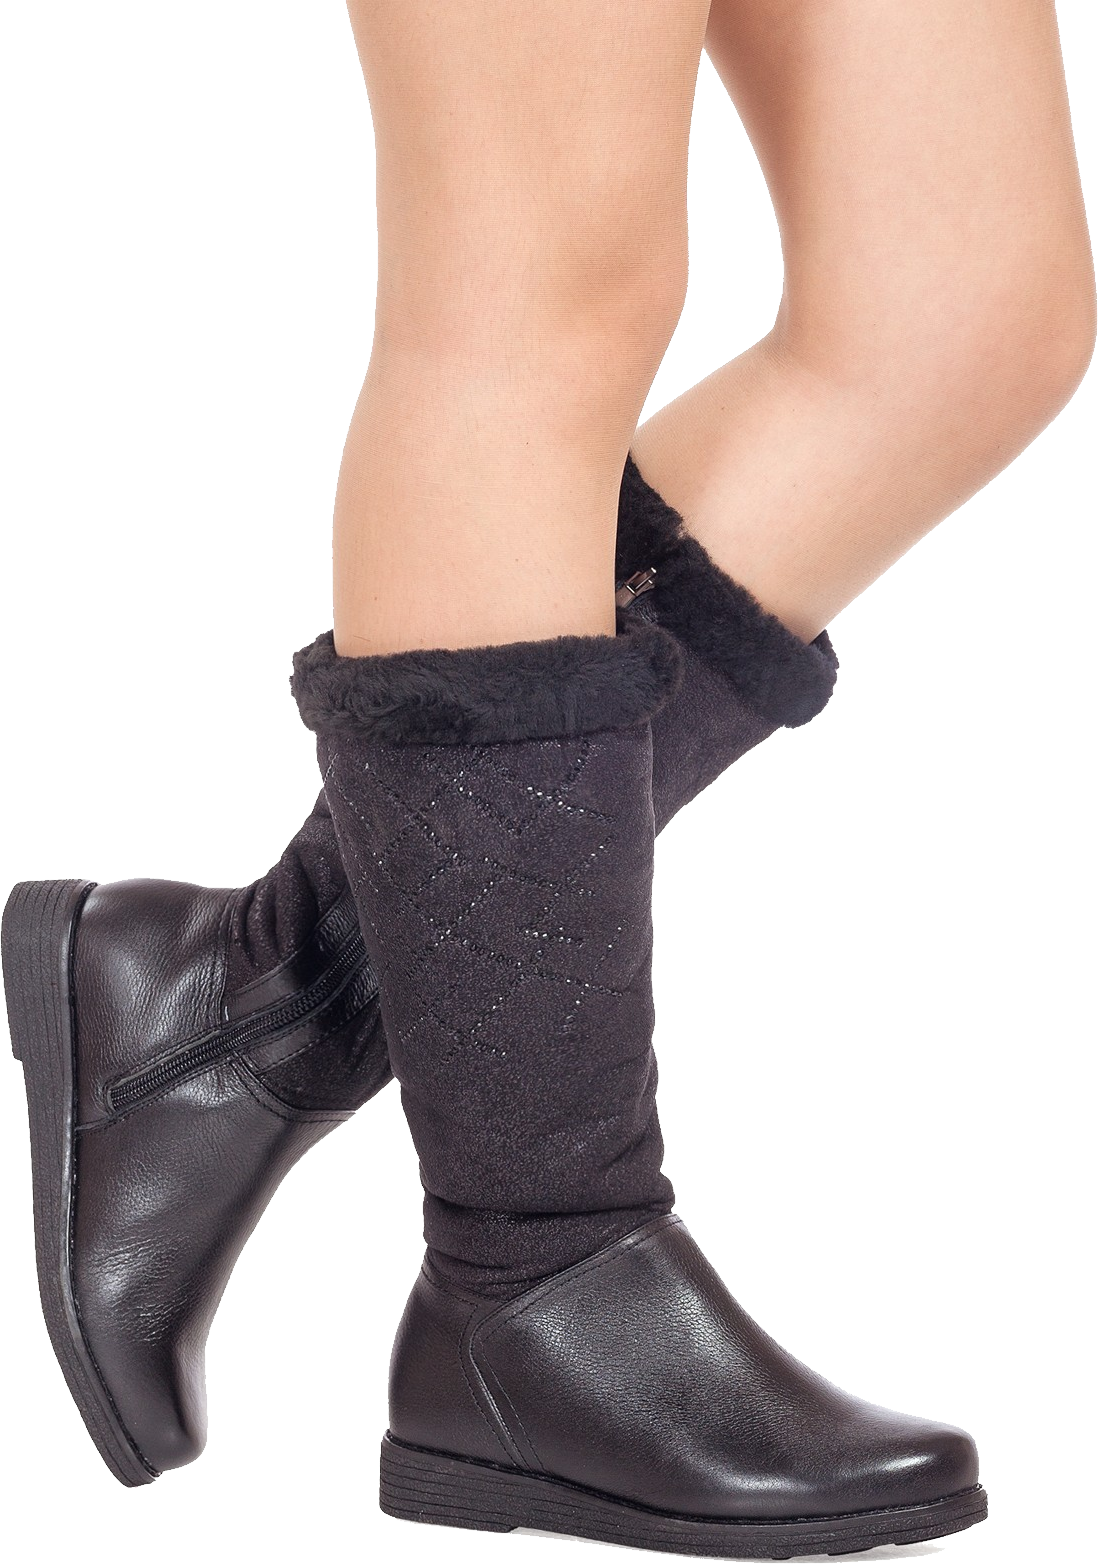 Boots on legs PNG image